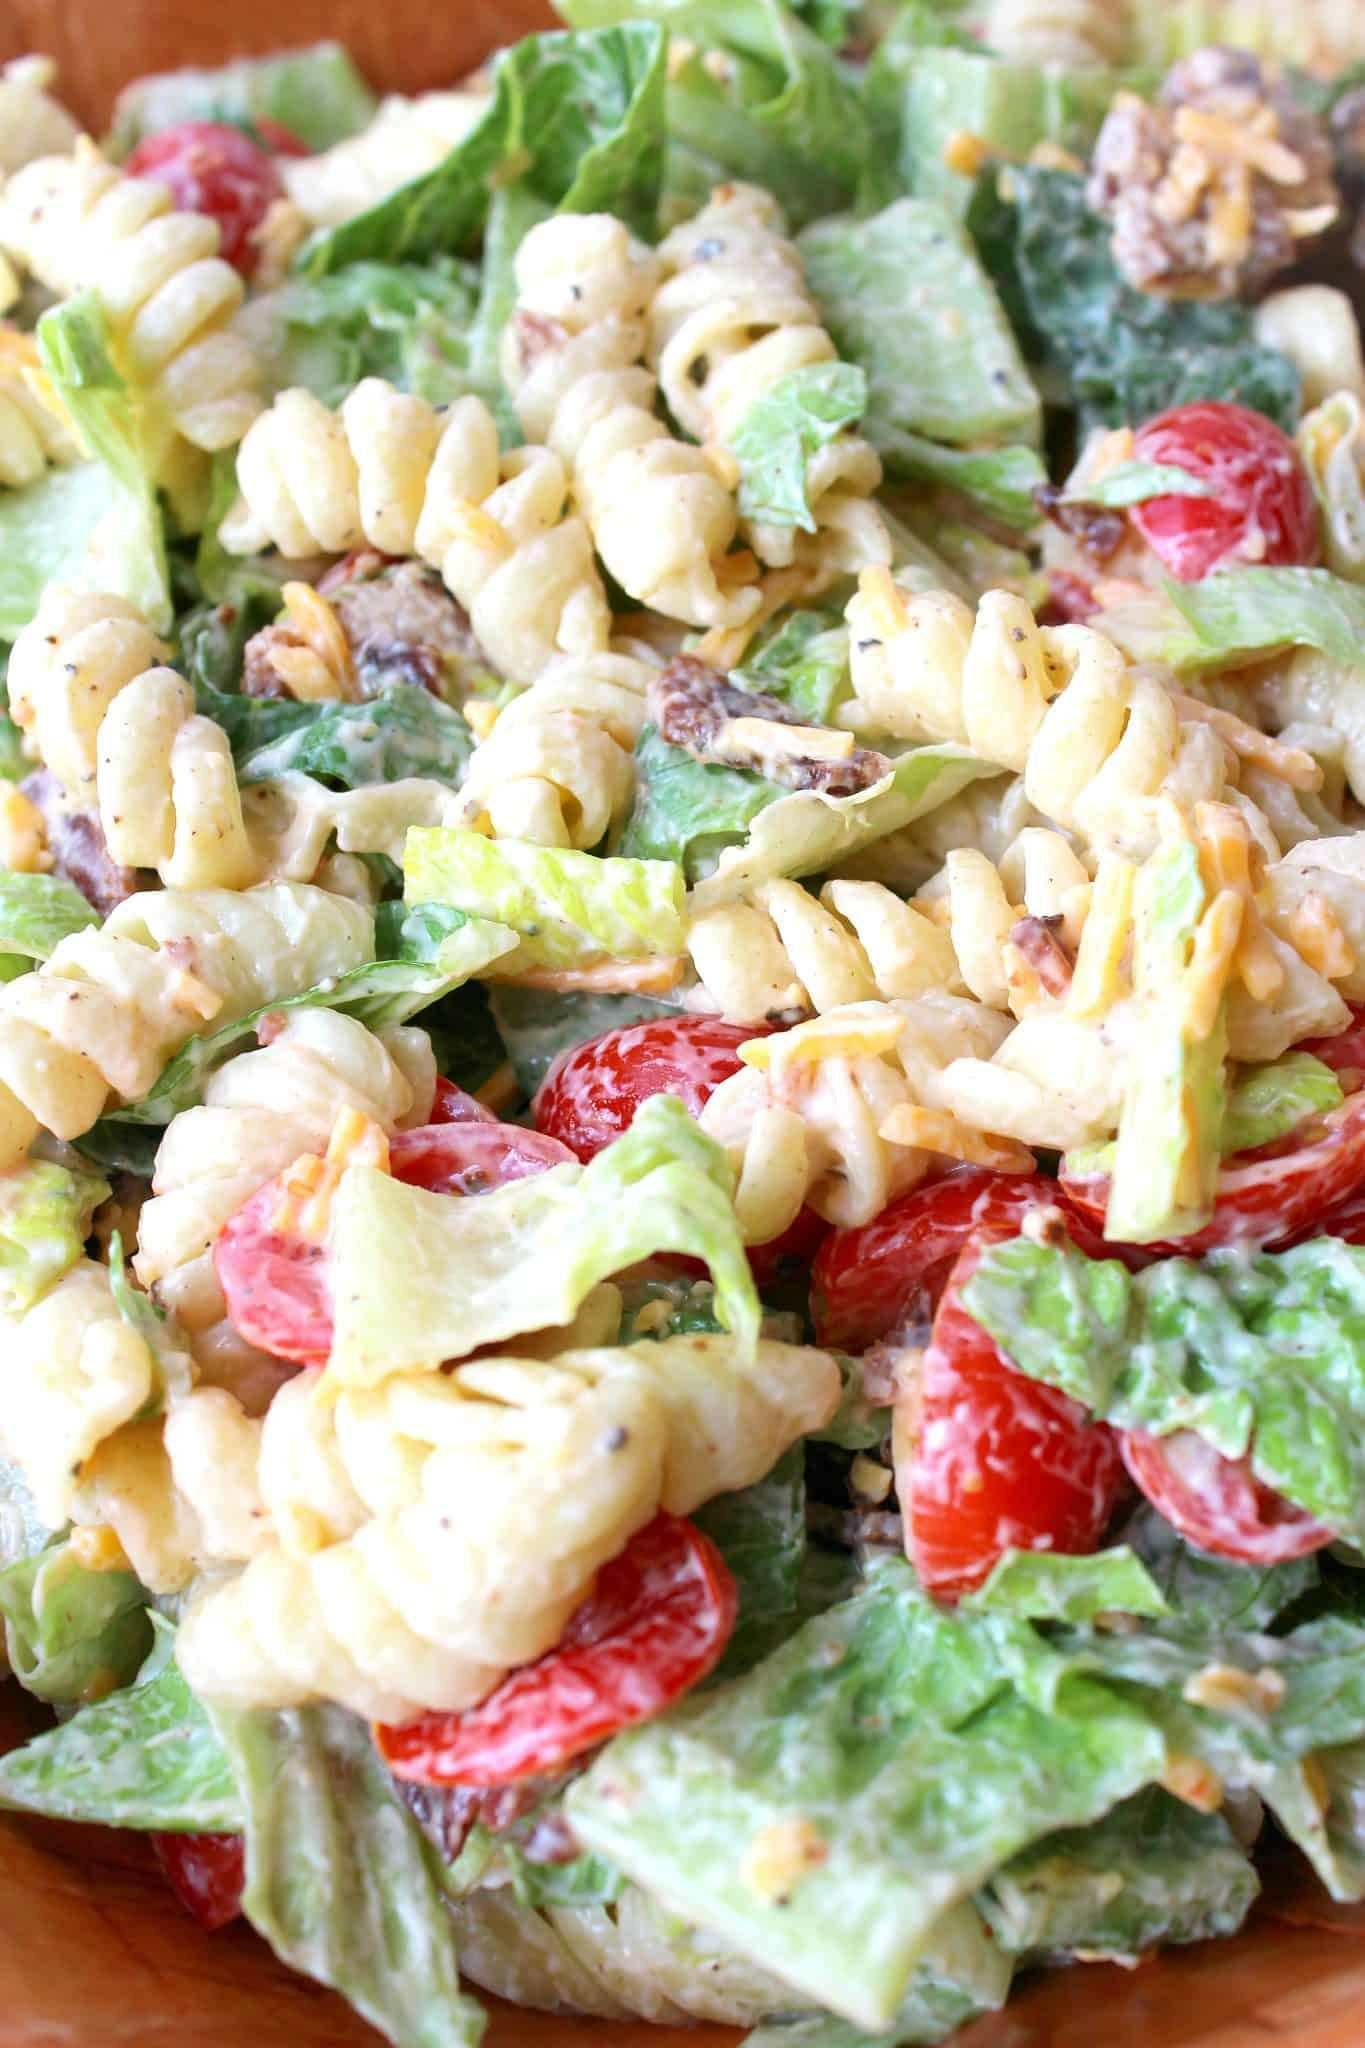 Easy Blt Pasta Salad Recipe In 2020 Pasta Salad Pasta Salad Recipes Blt Pasta Salad Recipes